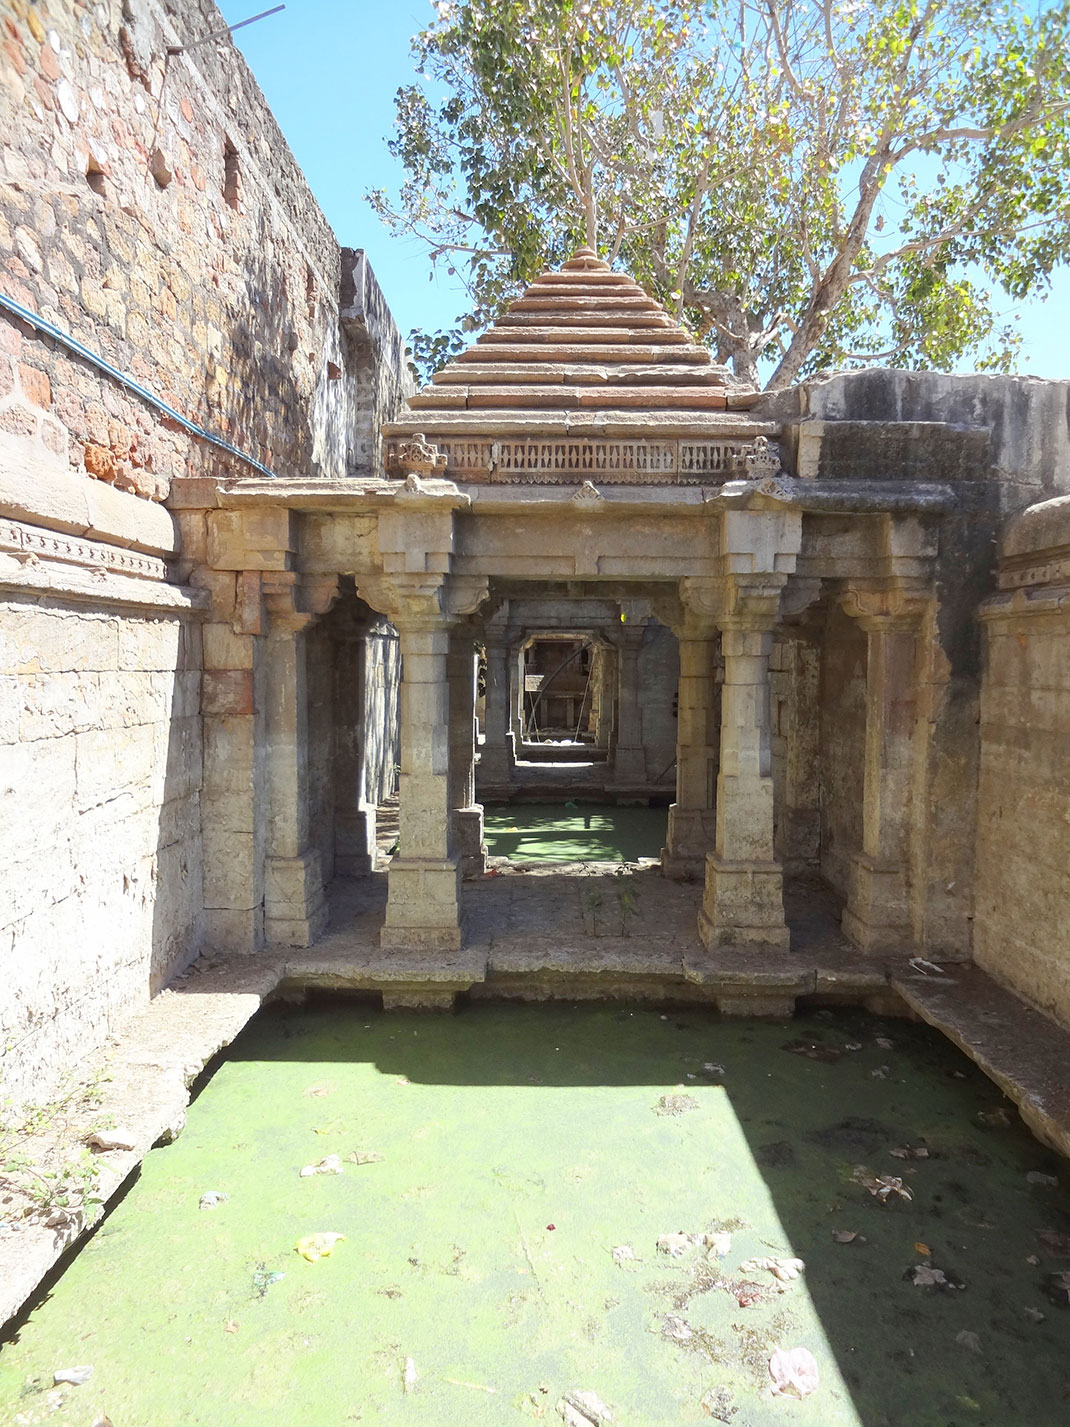 Admire These 2000 Year Old Somptous Buildings In India Destined To Disappear-34